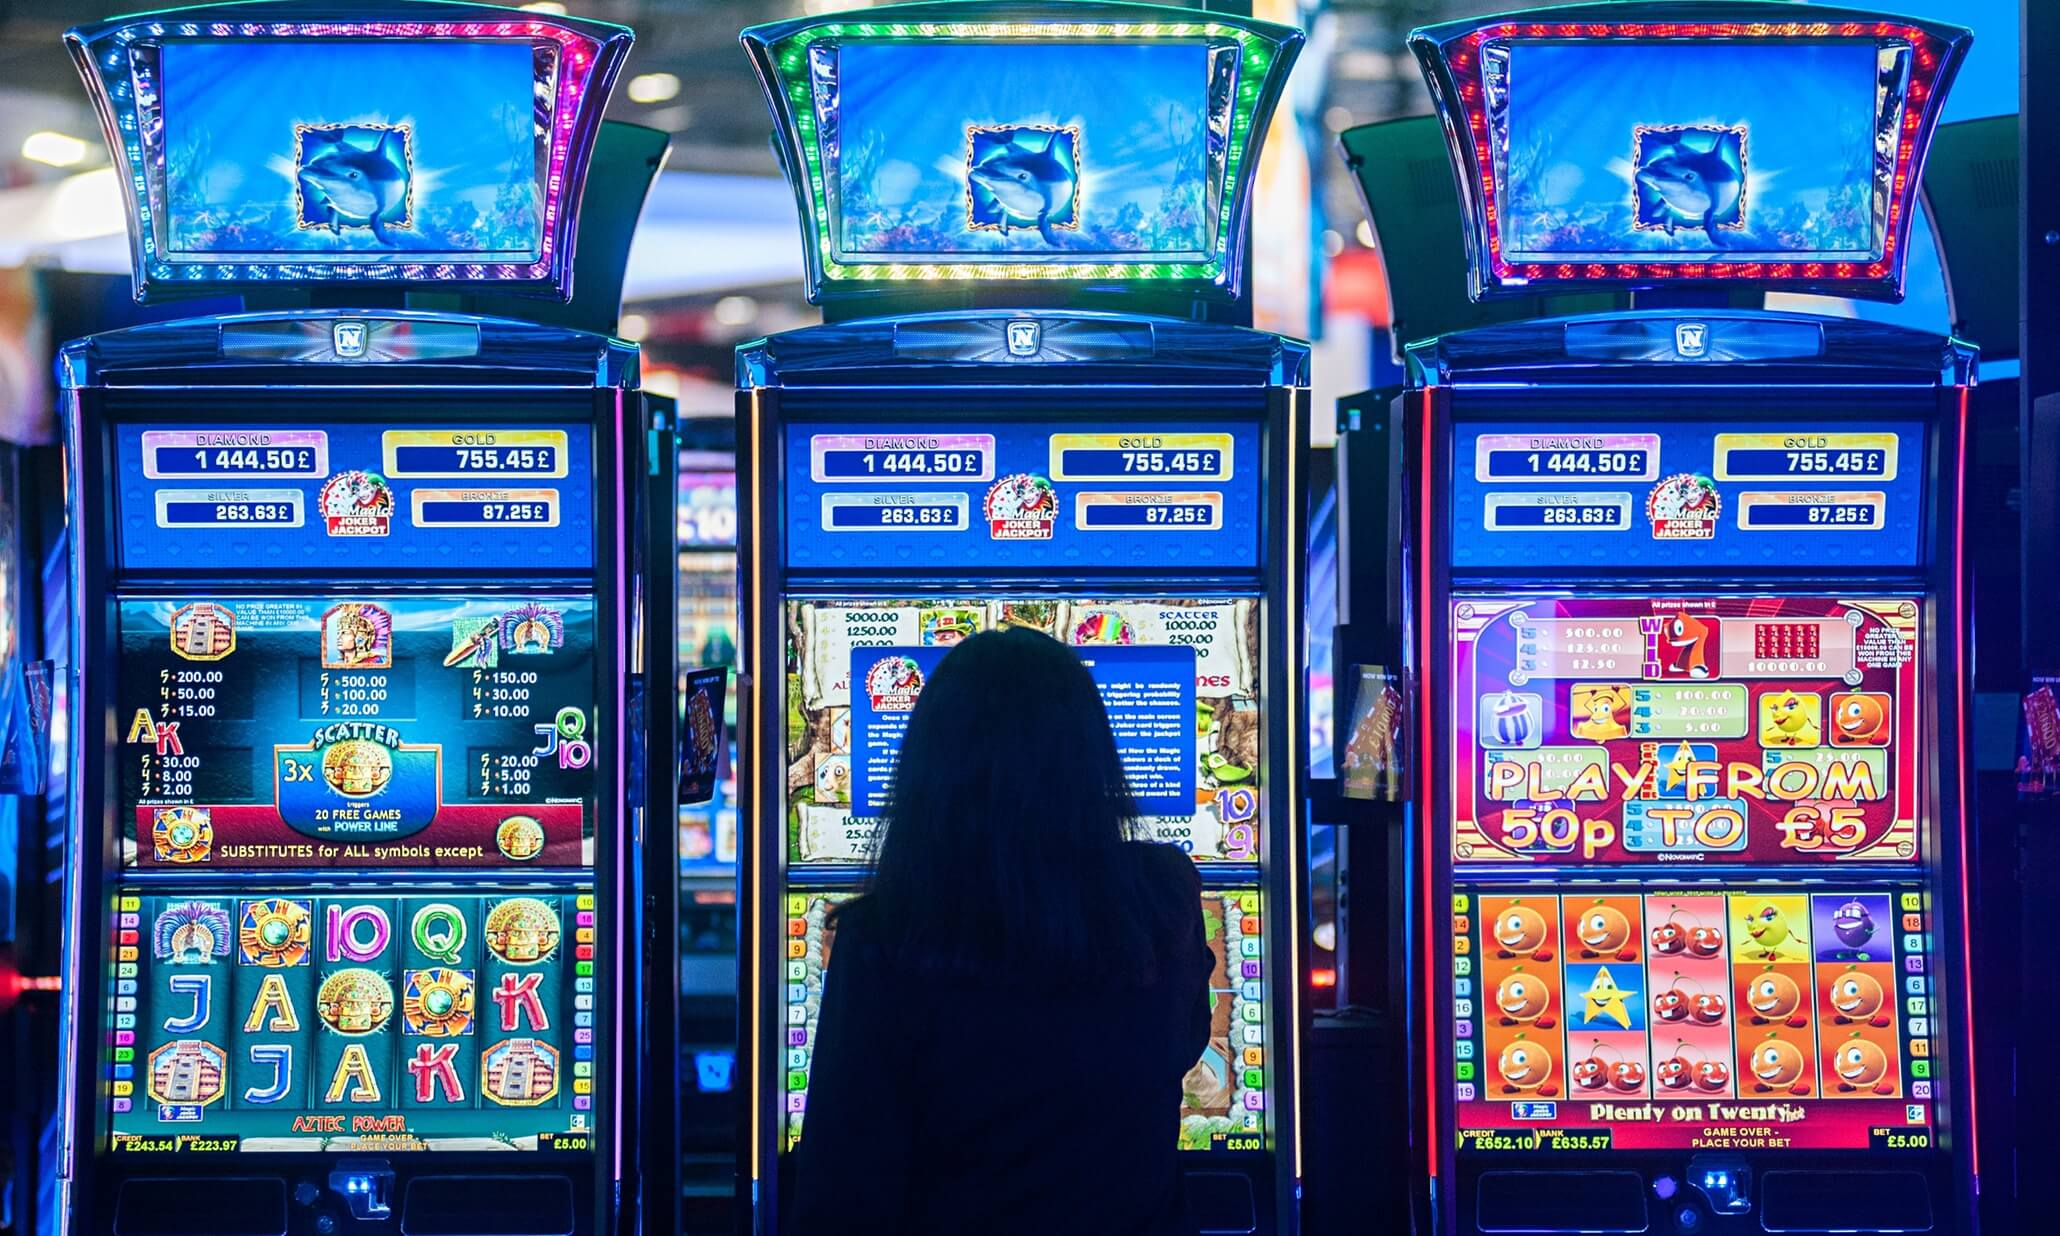 Slot Machine Pay Tables & What They Mean to Casino Players